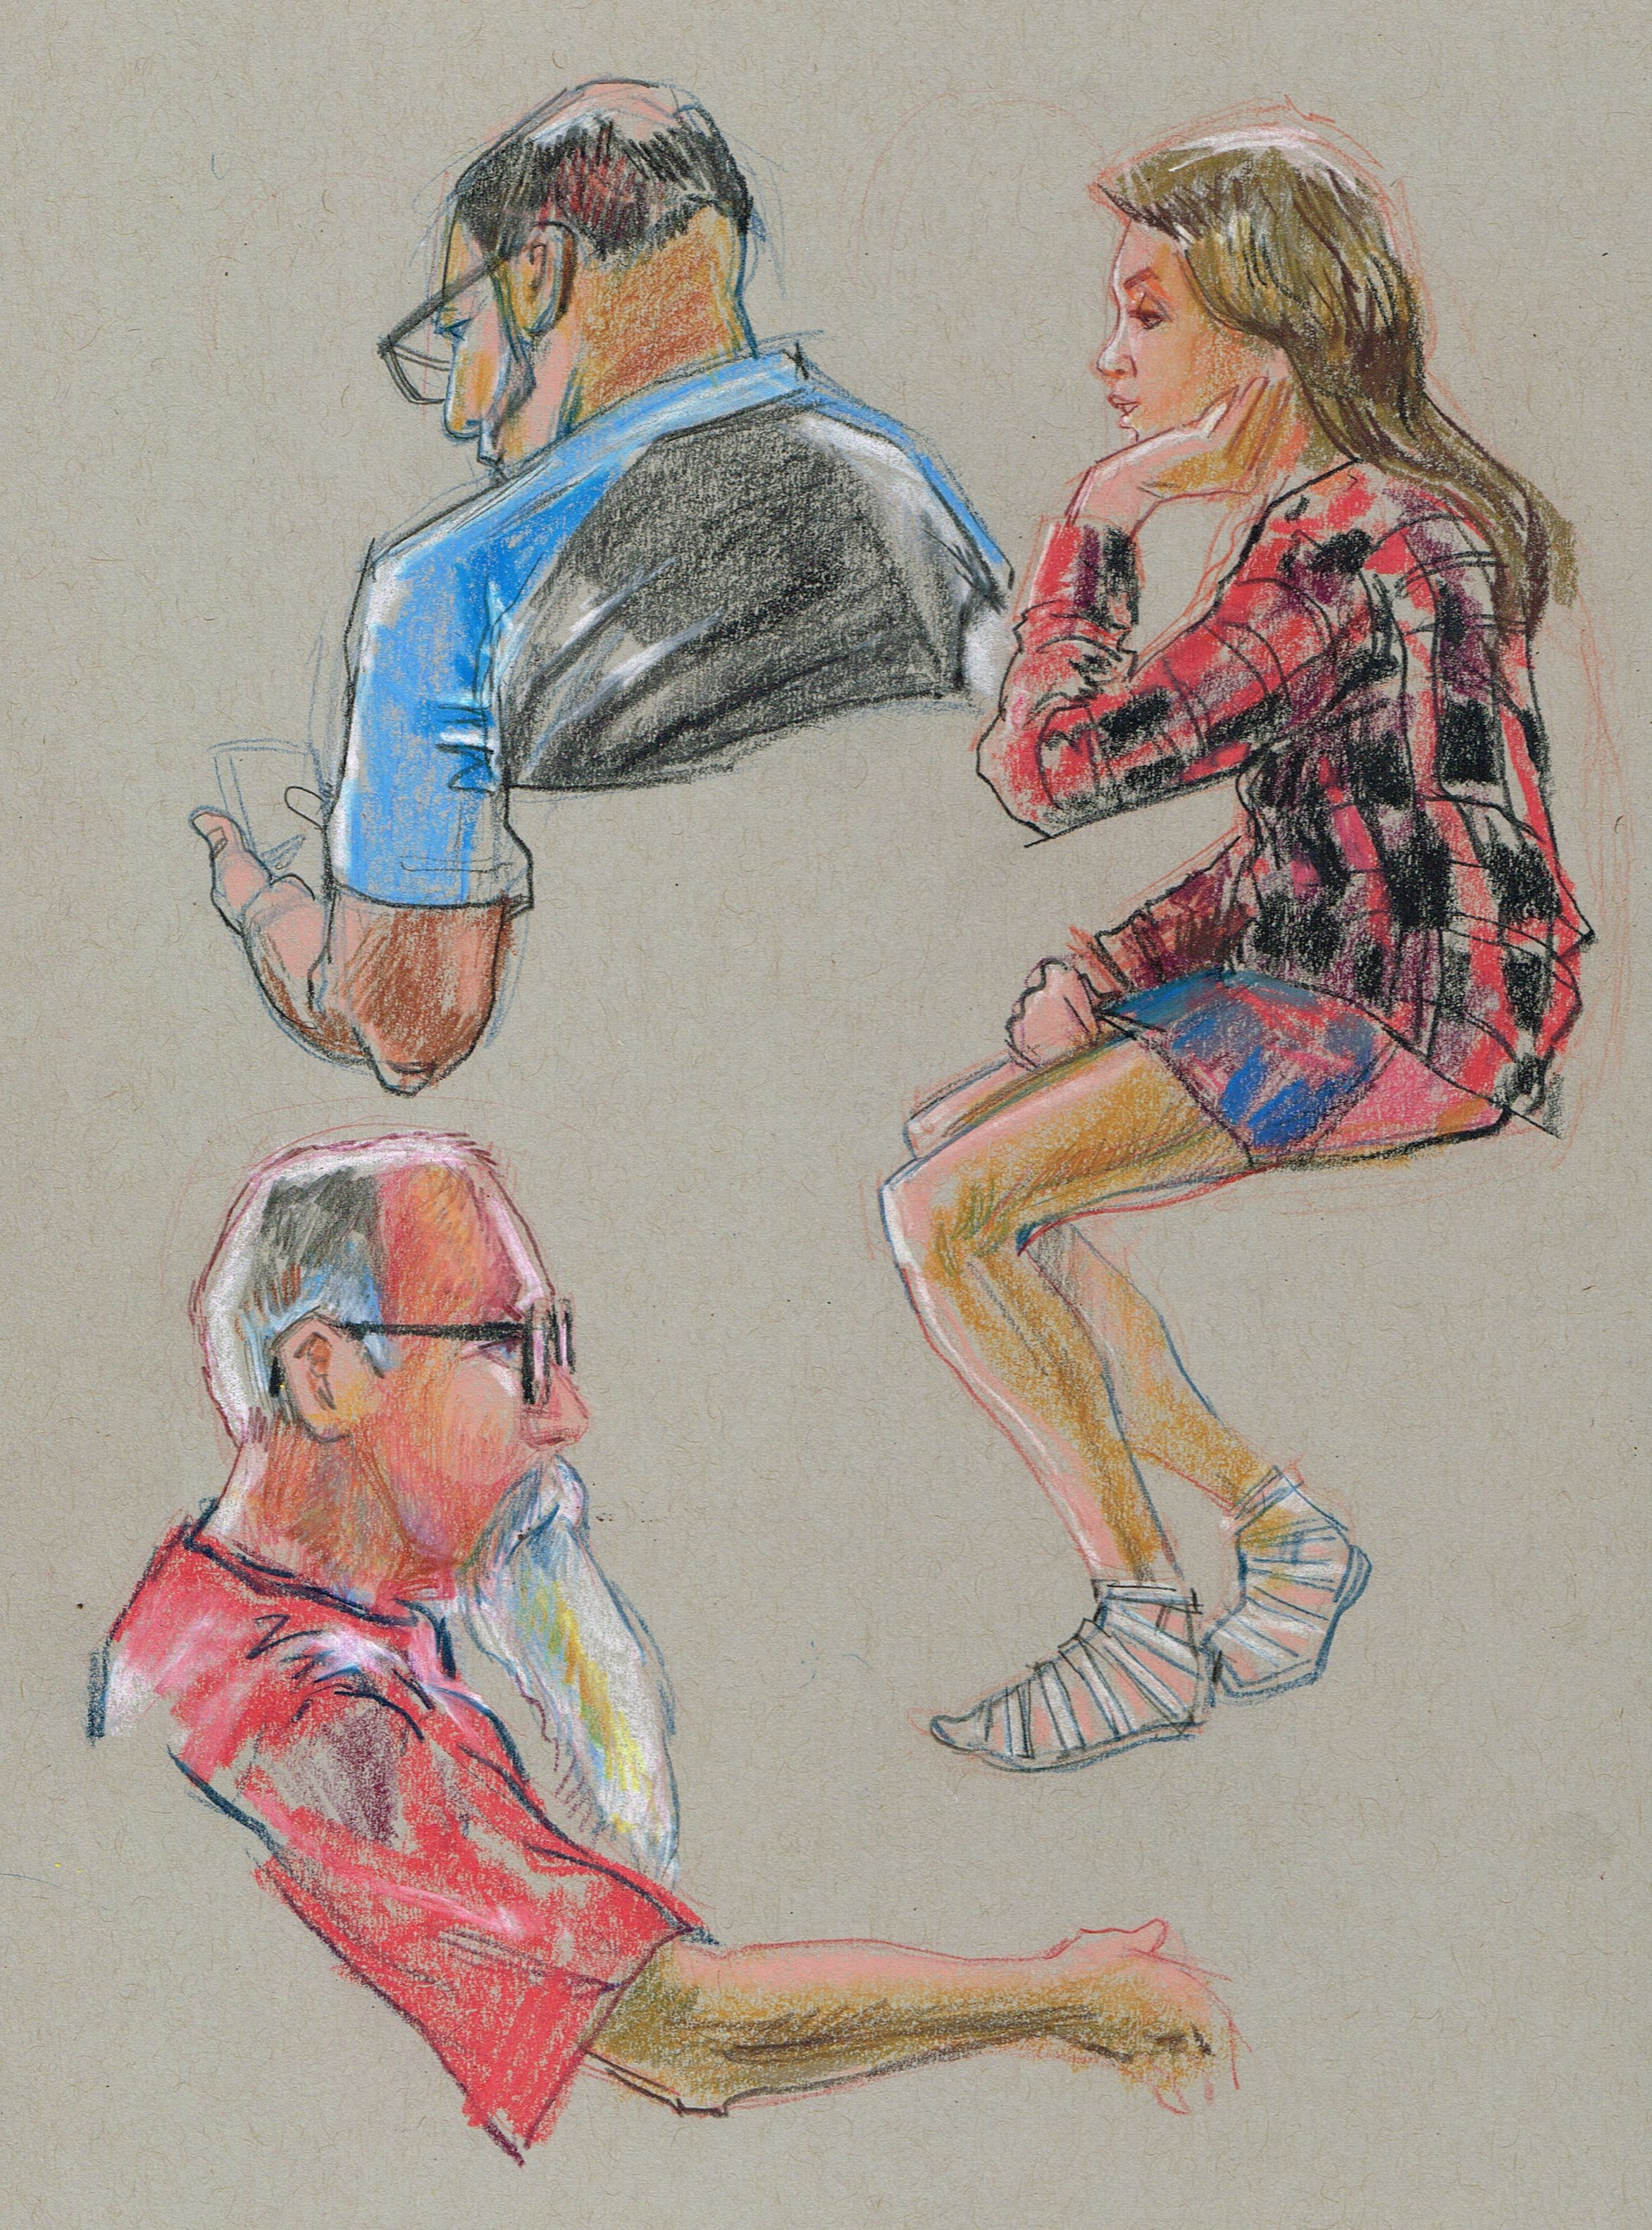 medium resolution of summer concert goers in the plaza colored pencil on toned sketchbook artist gary geraths